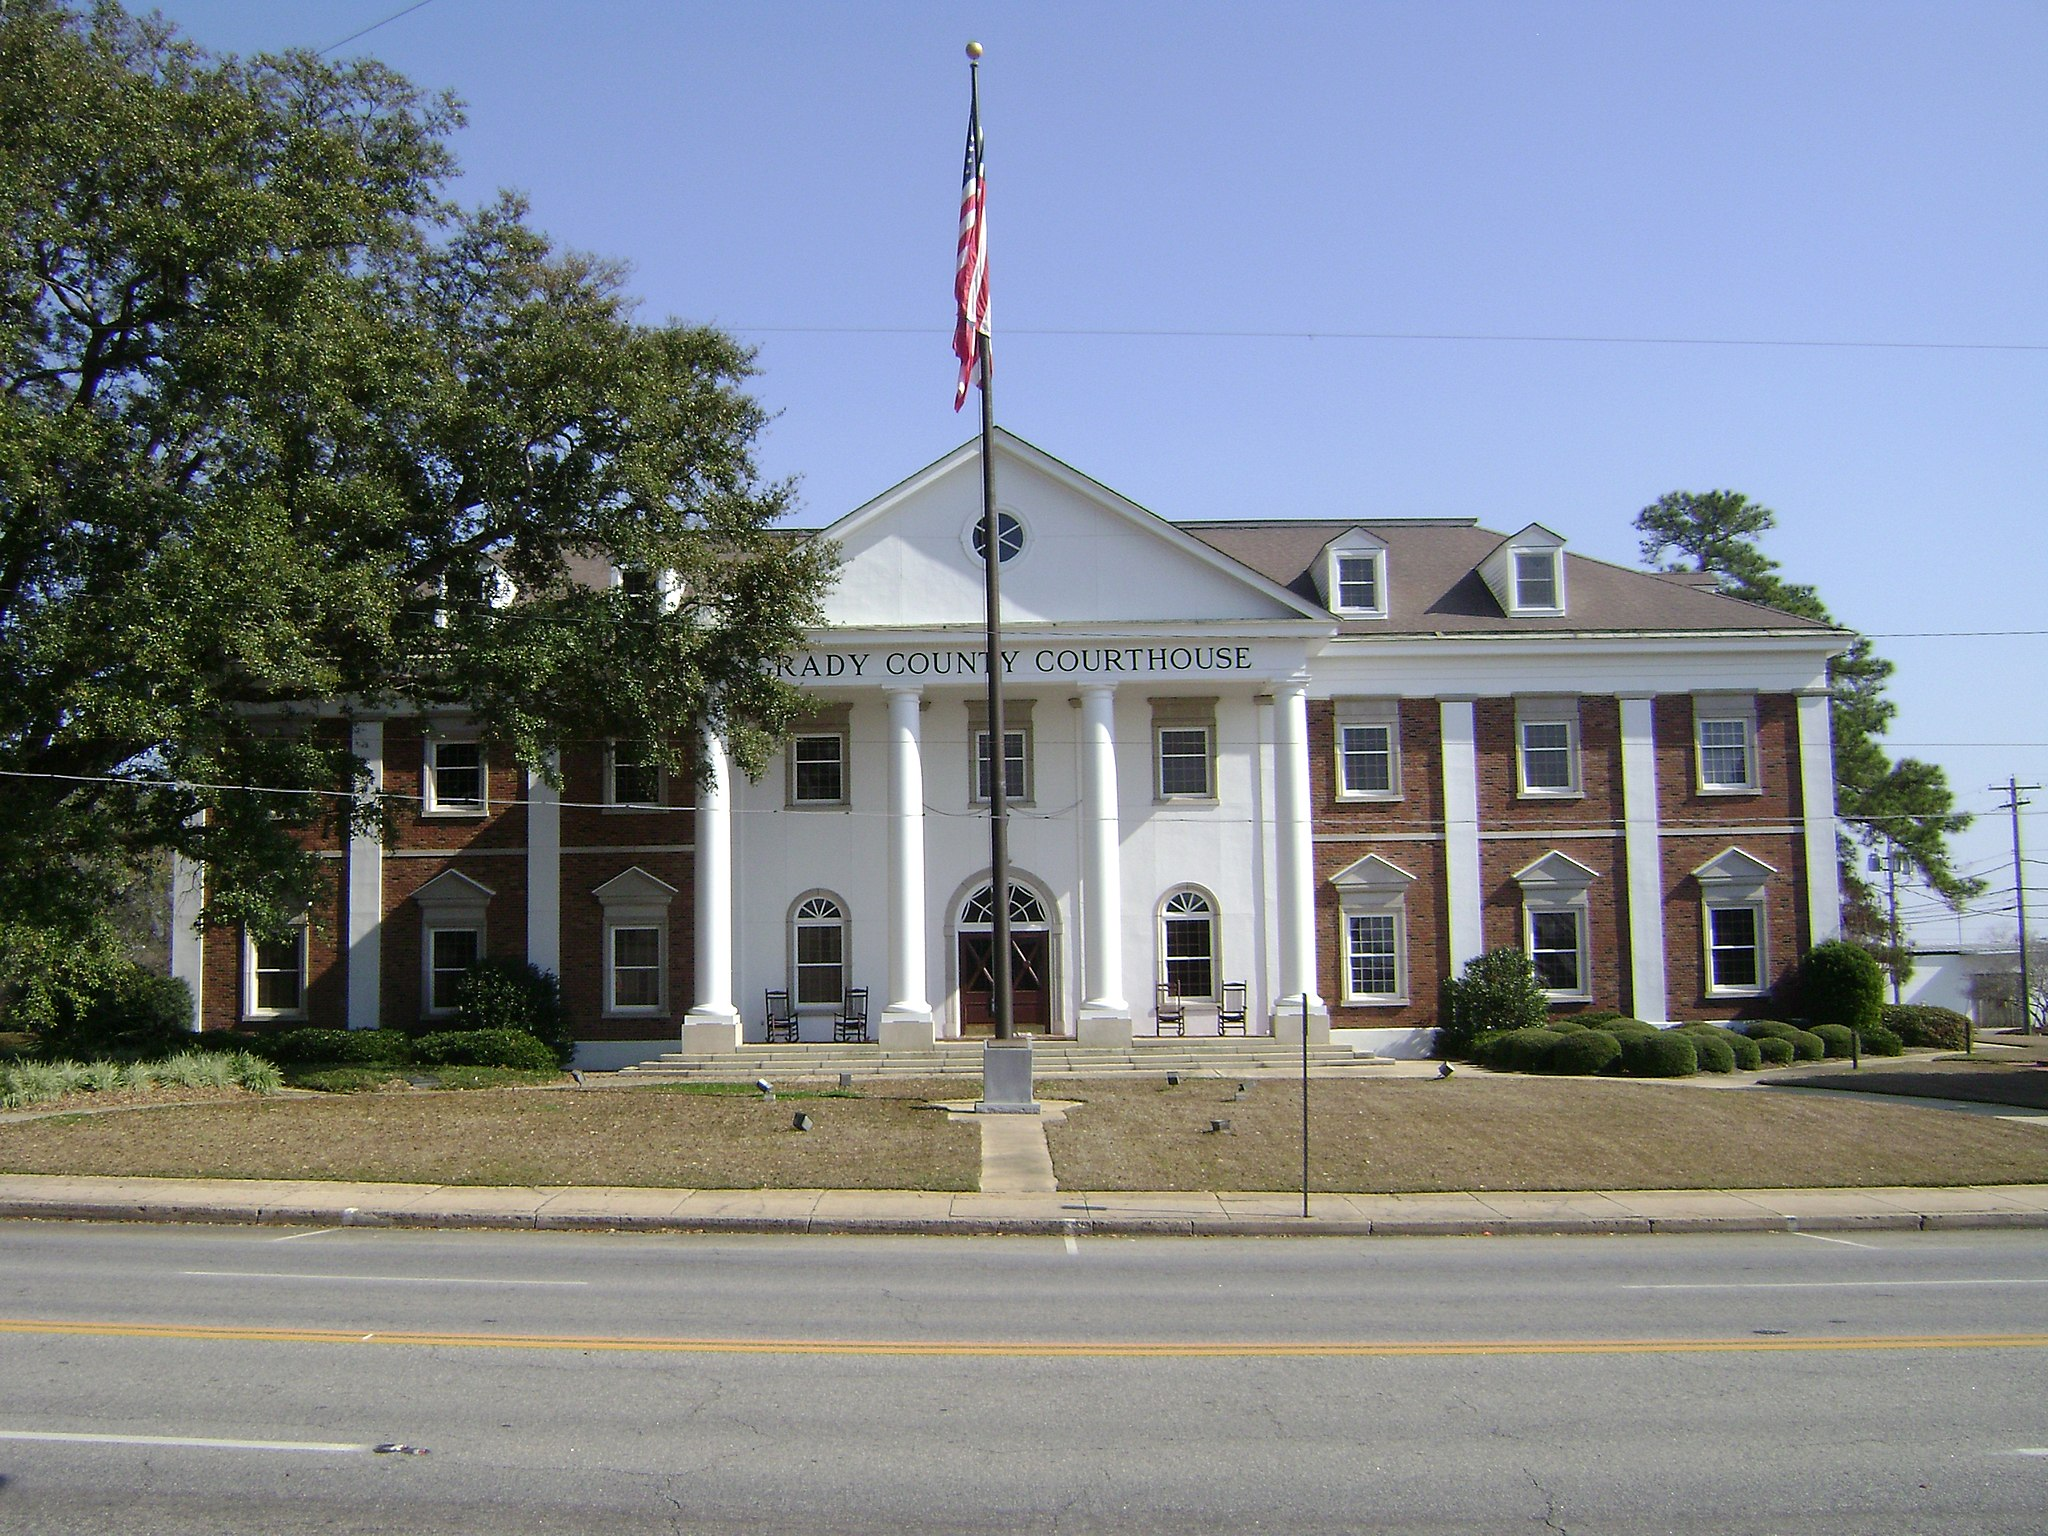 Grady County Courthouse (West face)